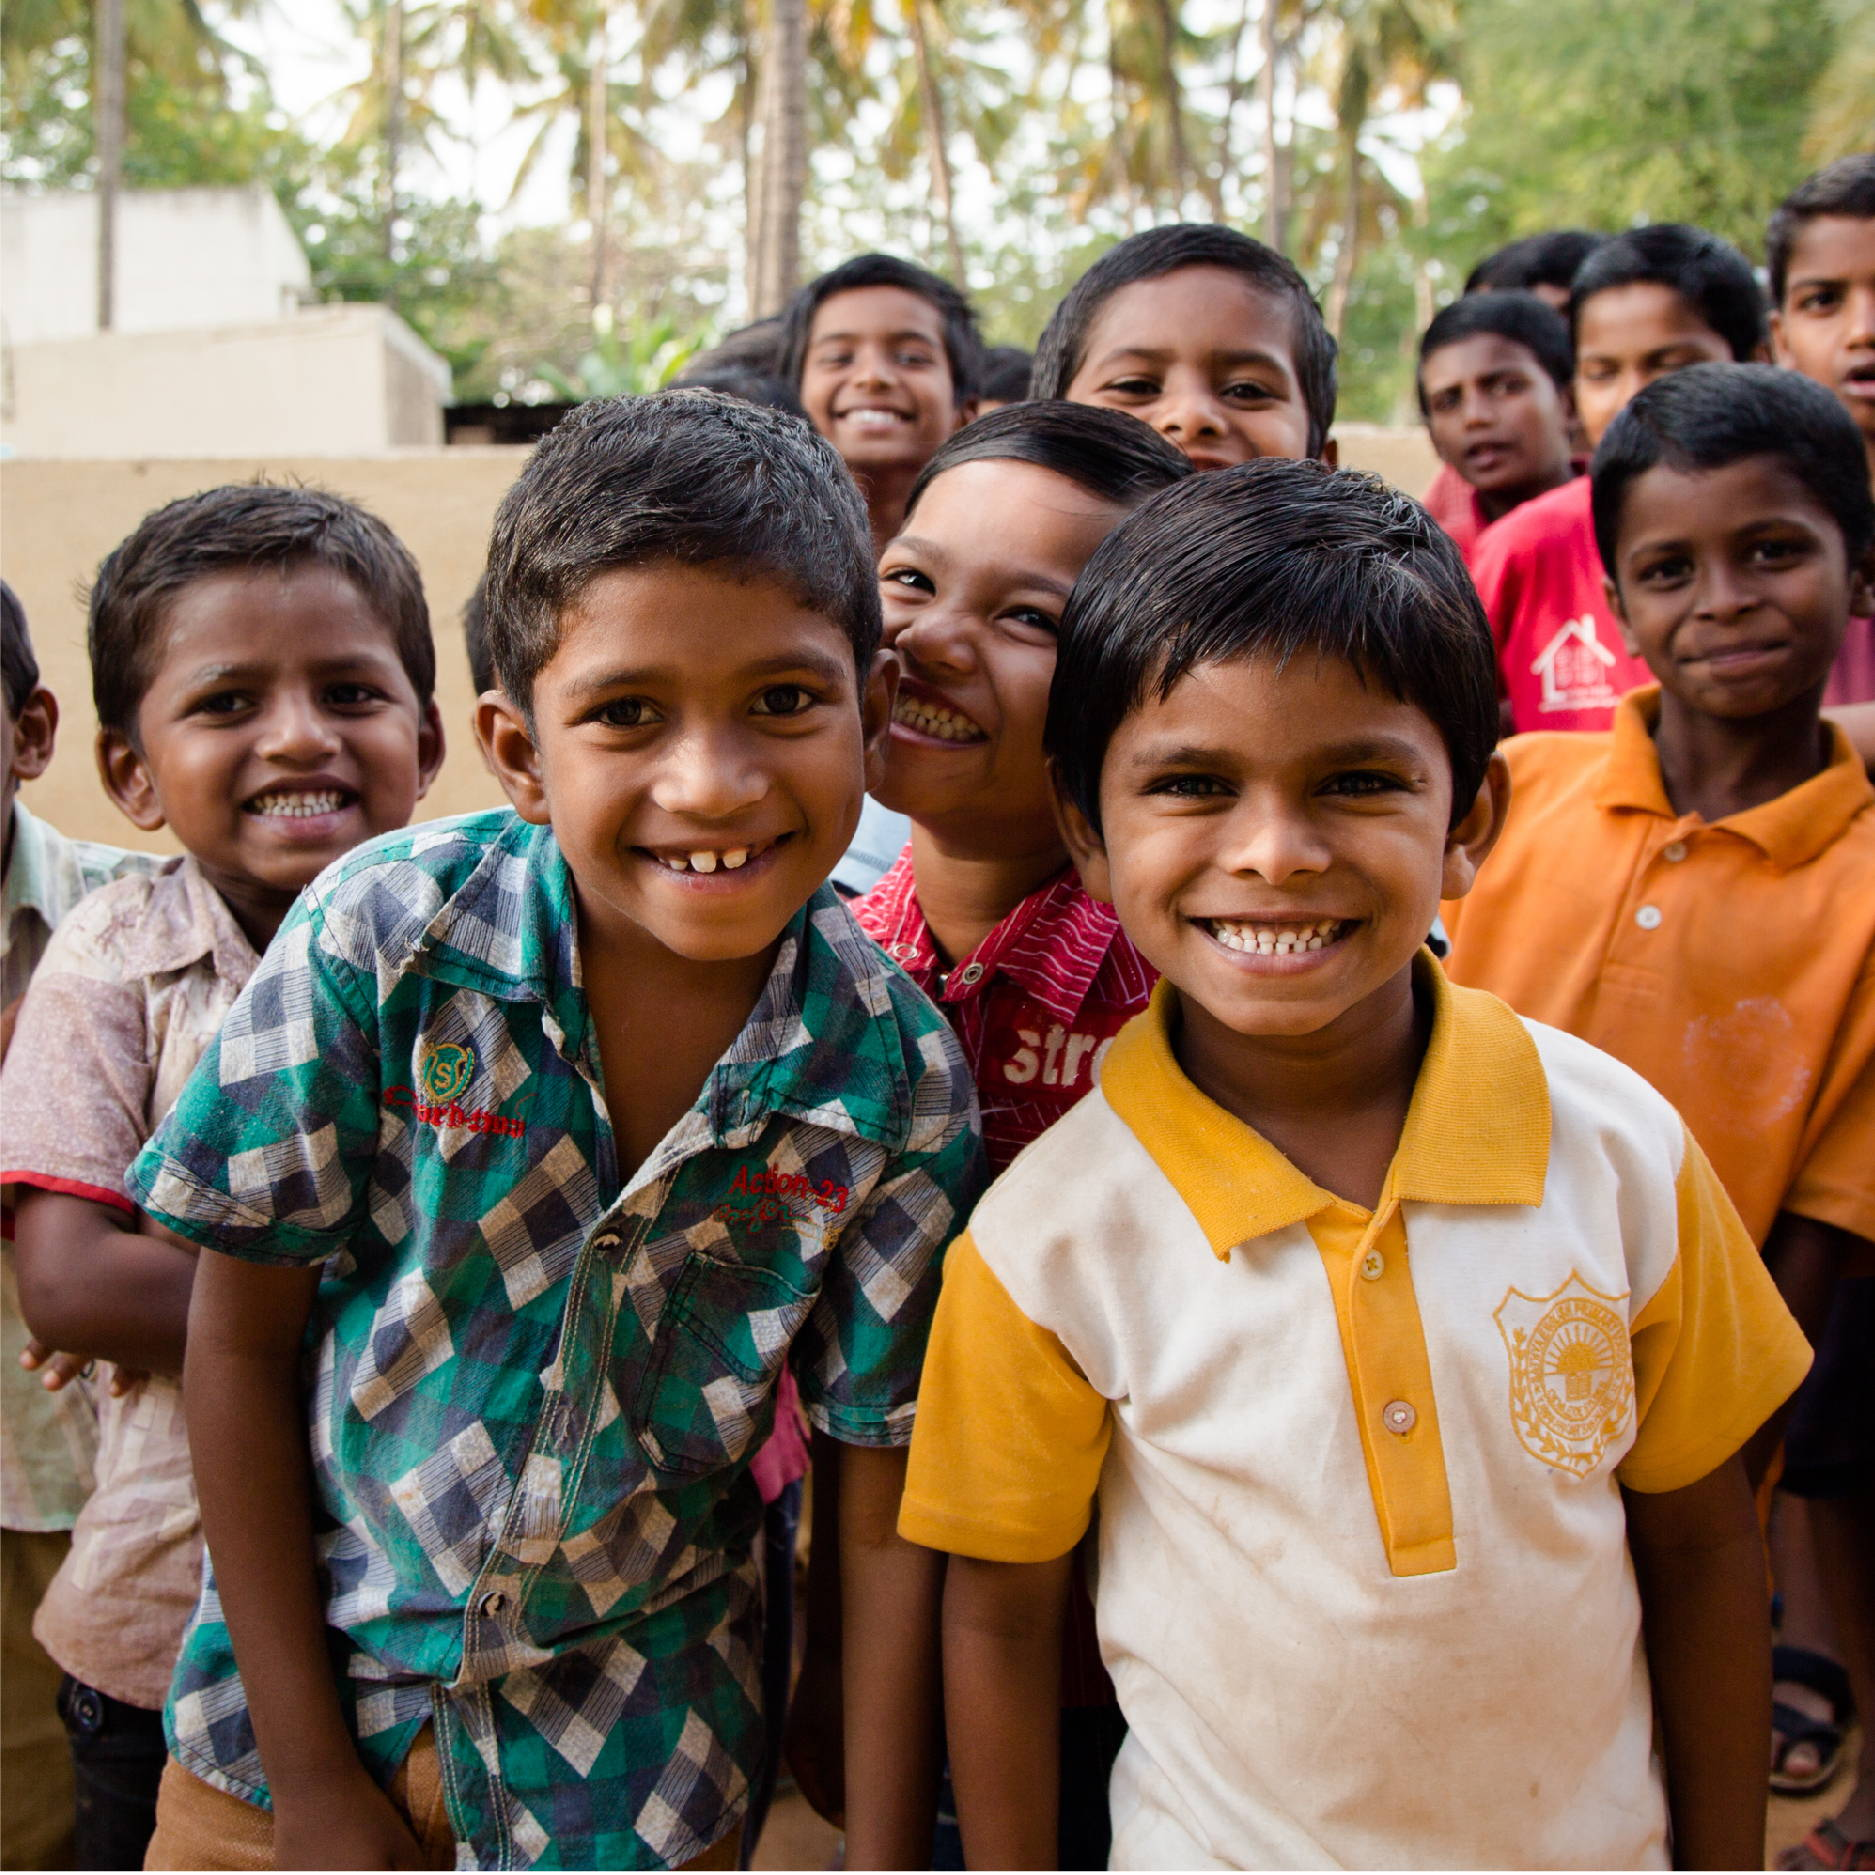 a large group of young Indian boys, around the age of 10, pose smiling and looking tough.